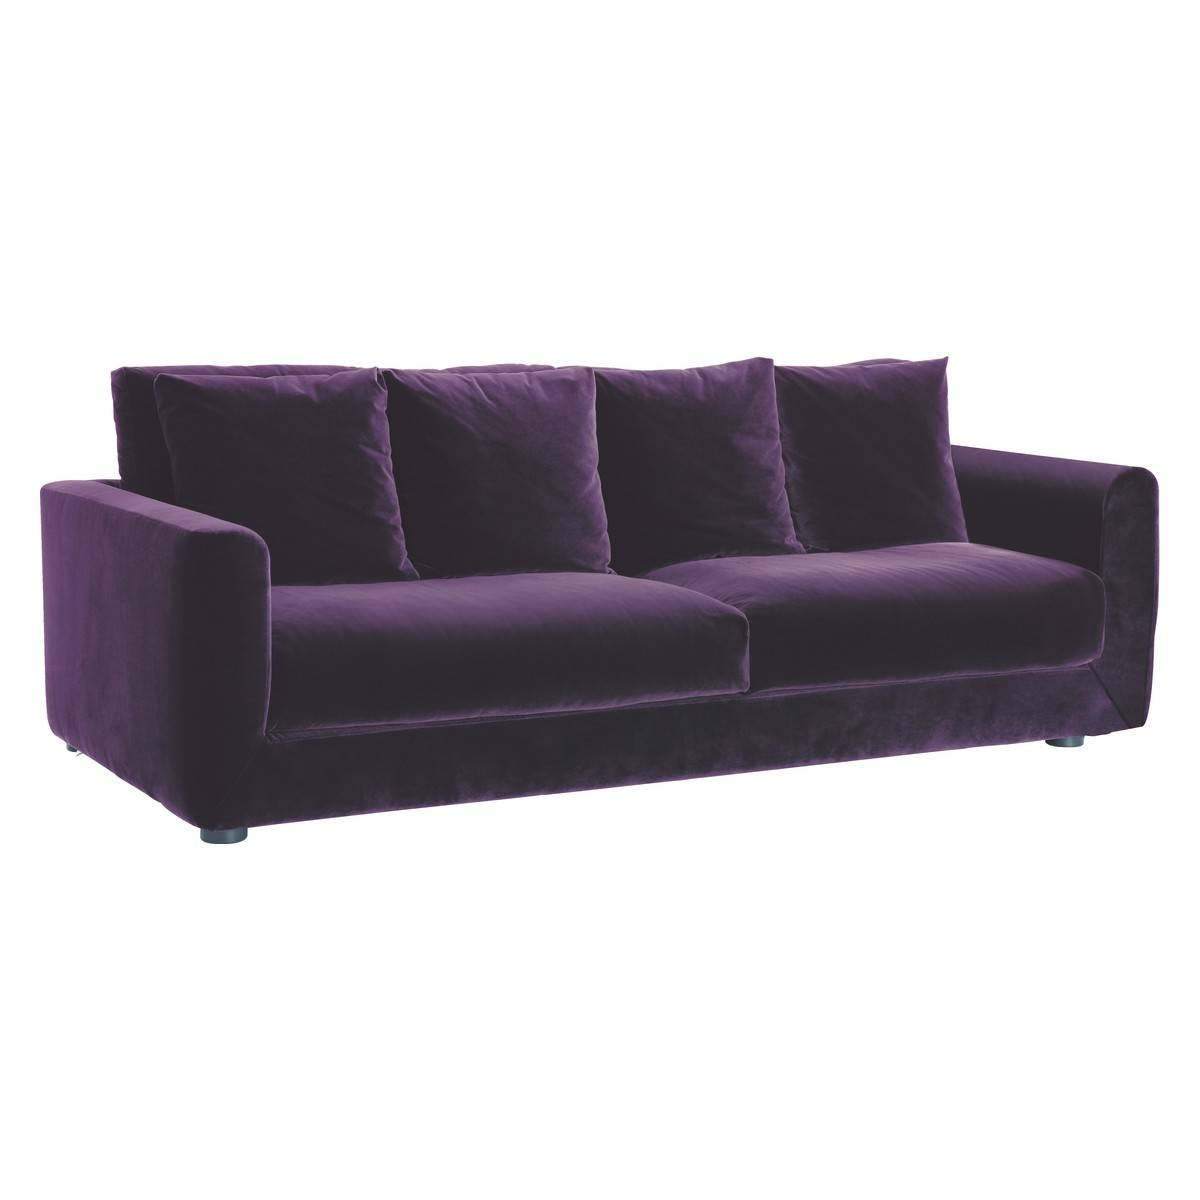 Rupert Purple Velvet 3 Seater Sofa | Buy Now At Habitat Uk intended for Large 4 Seater Sofas (Image 28 of 30)